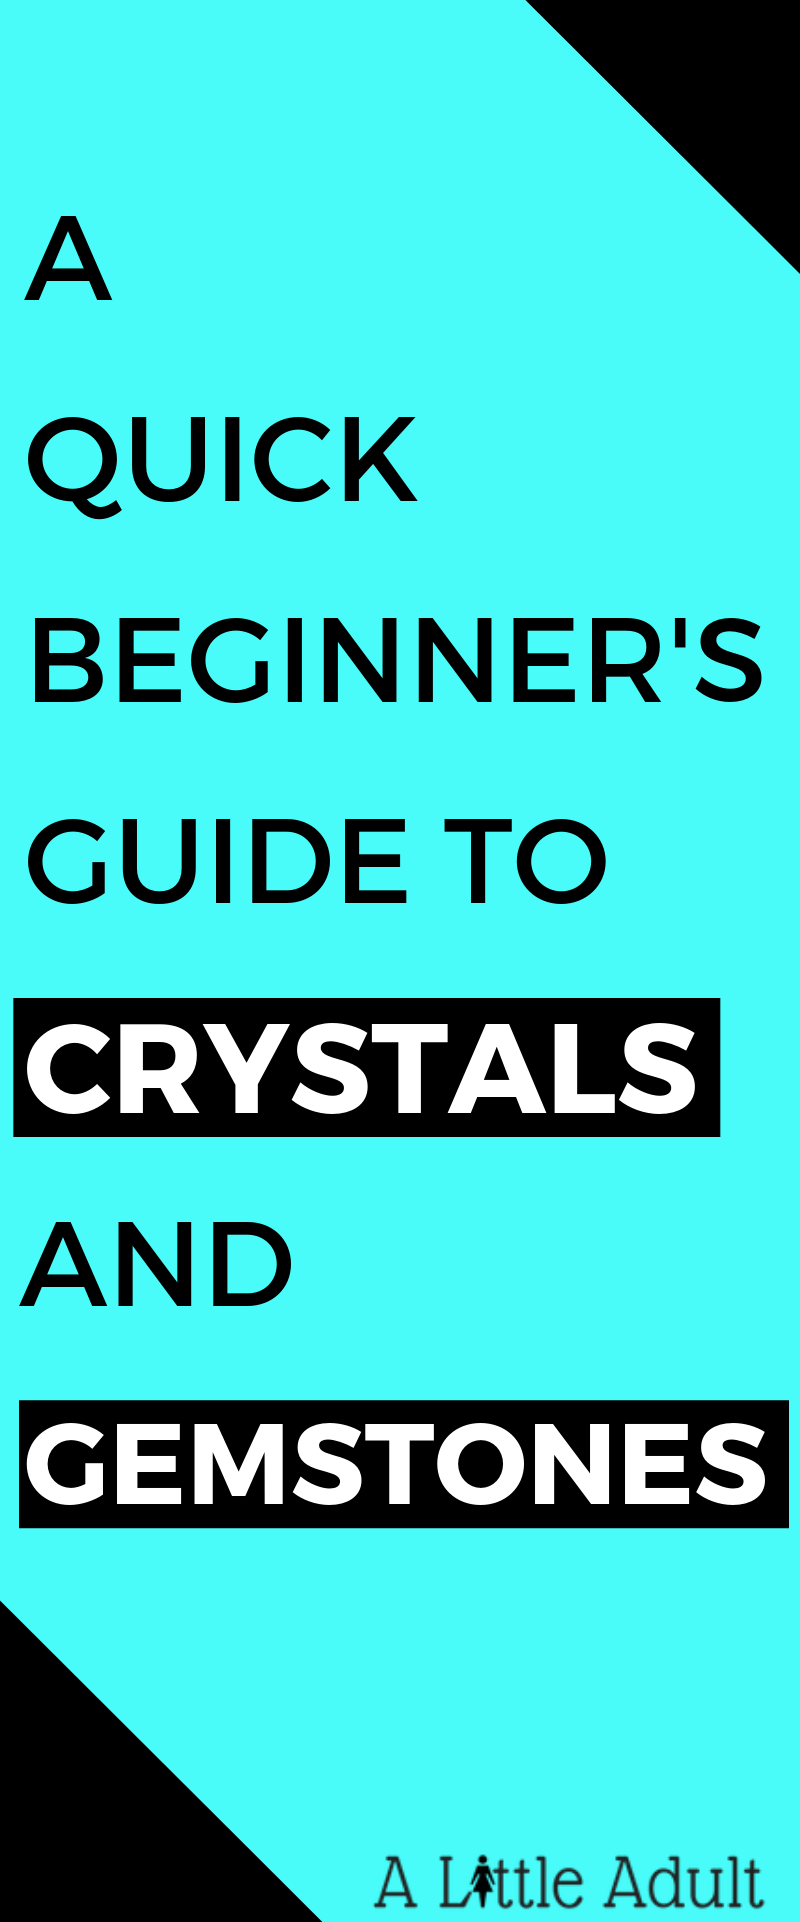 Quick Beginners Guide to Crystals and Gemstones